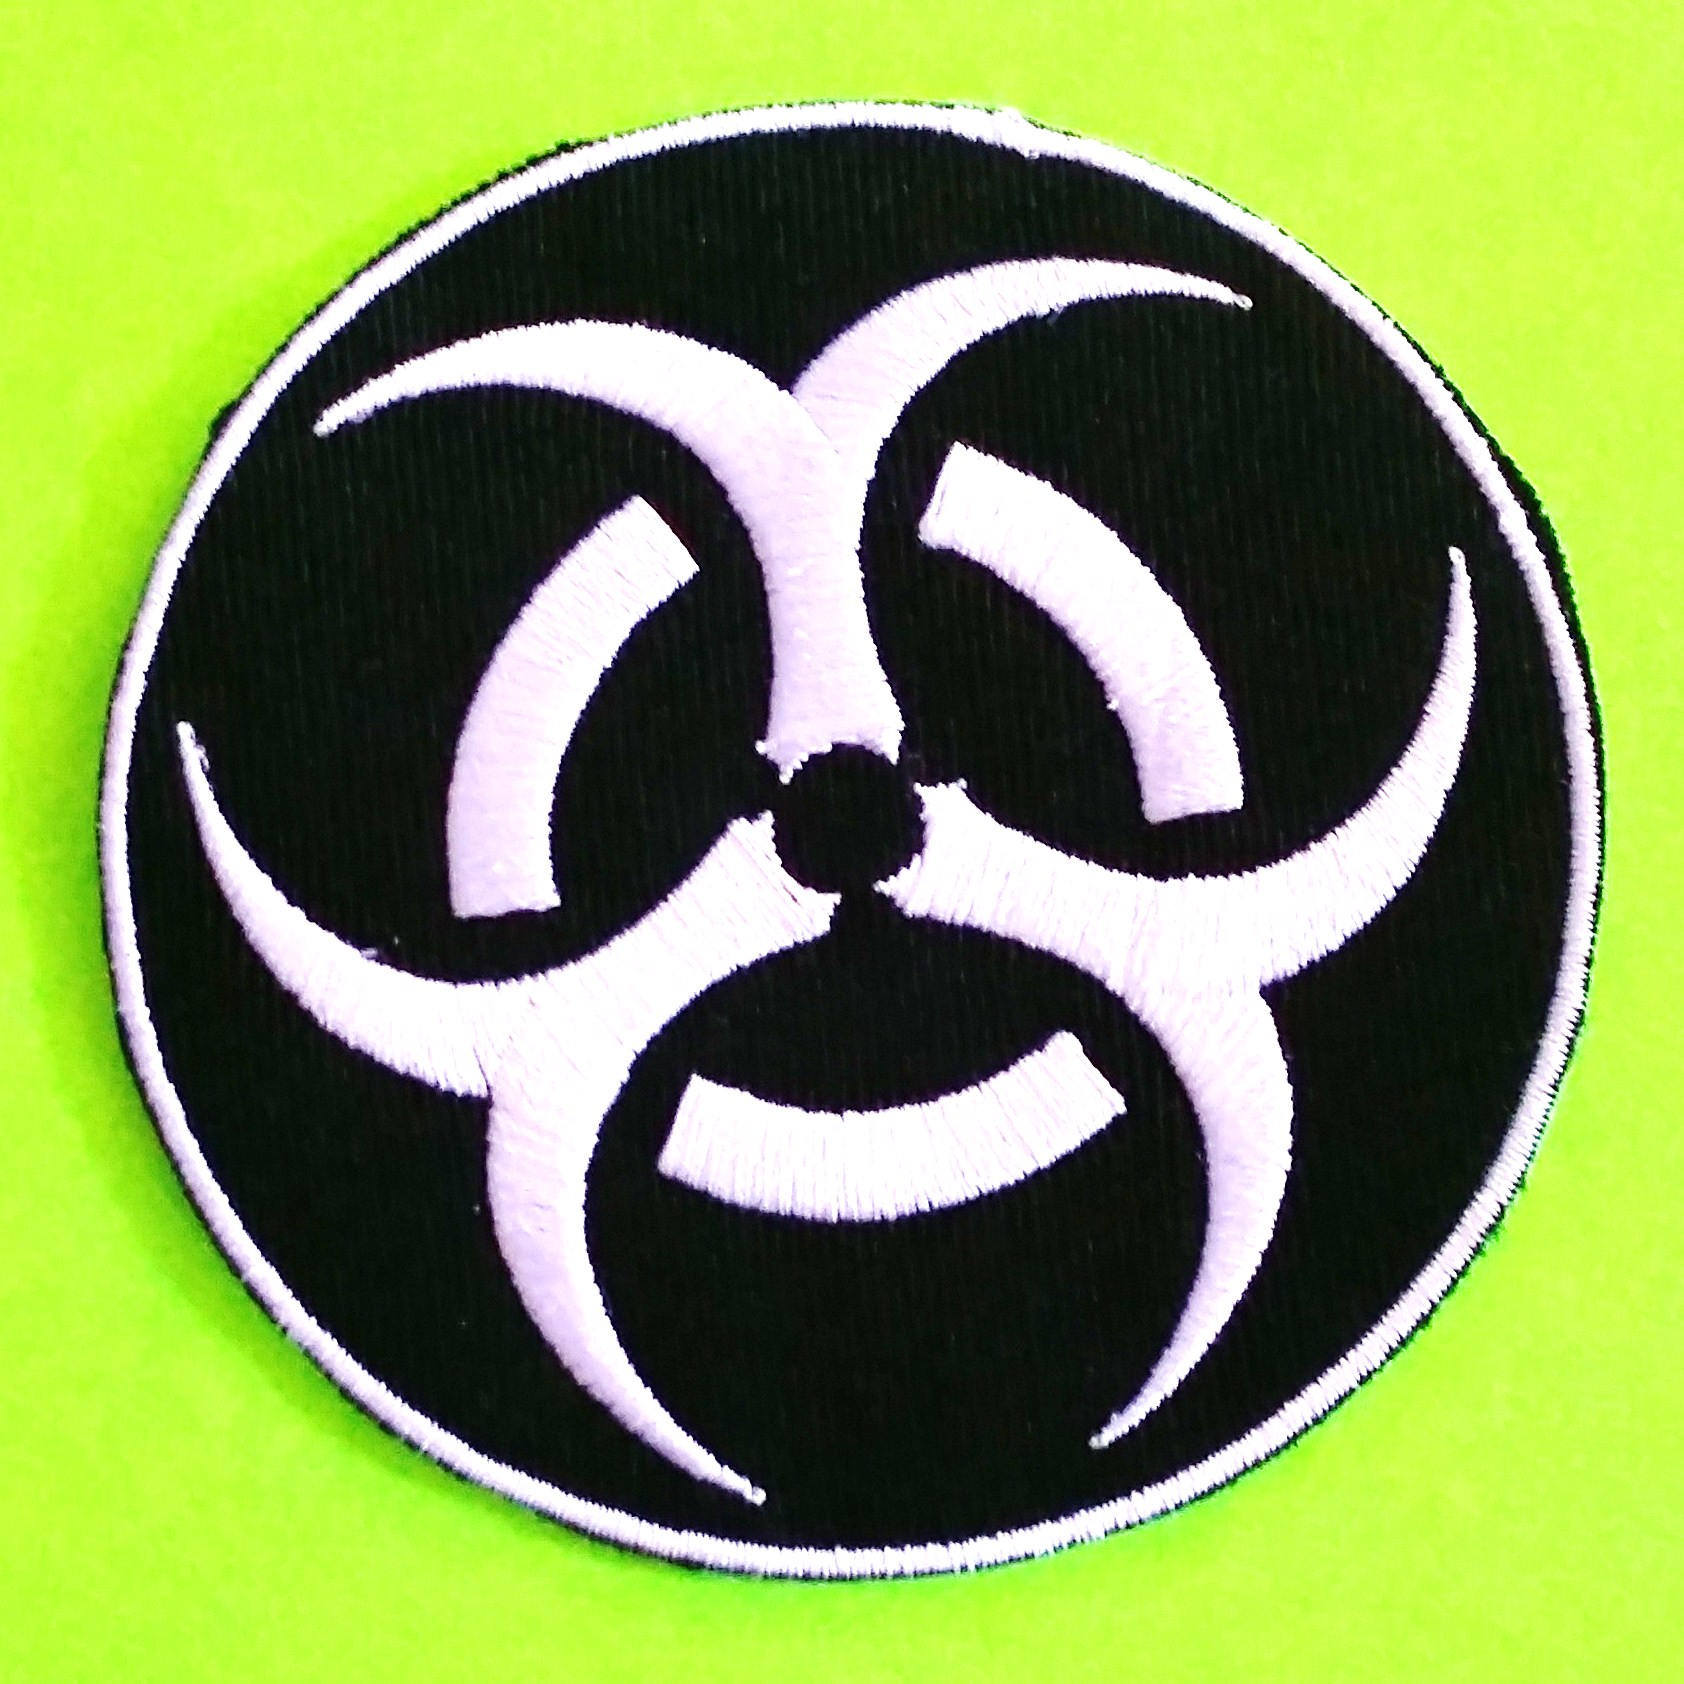 Toxic Symbol Black And White Biohazard Symbol Toxic...